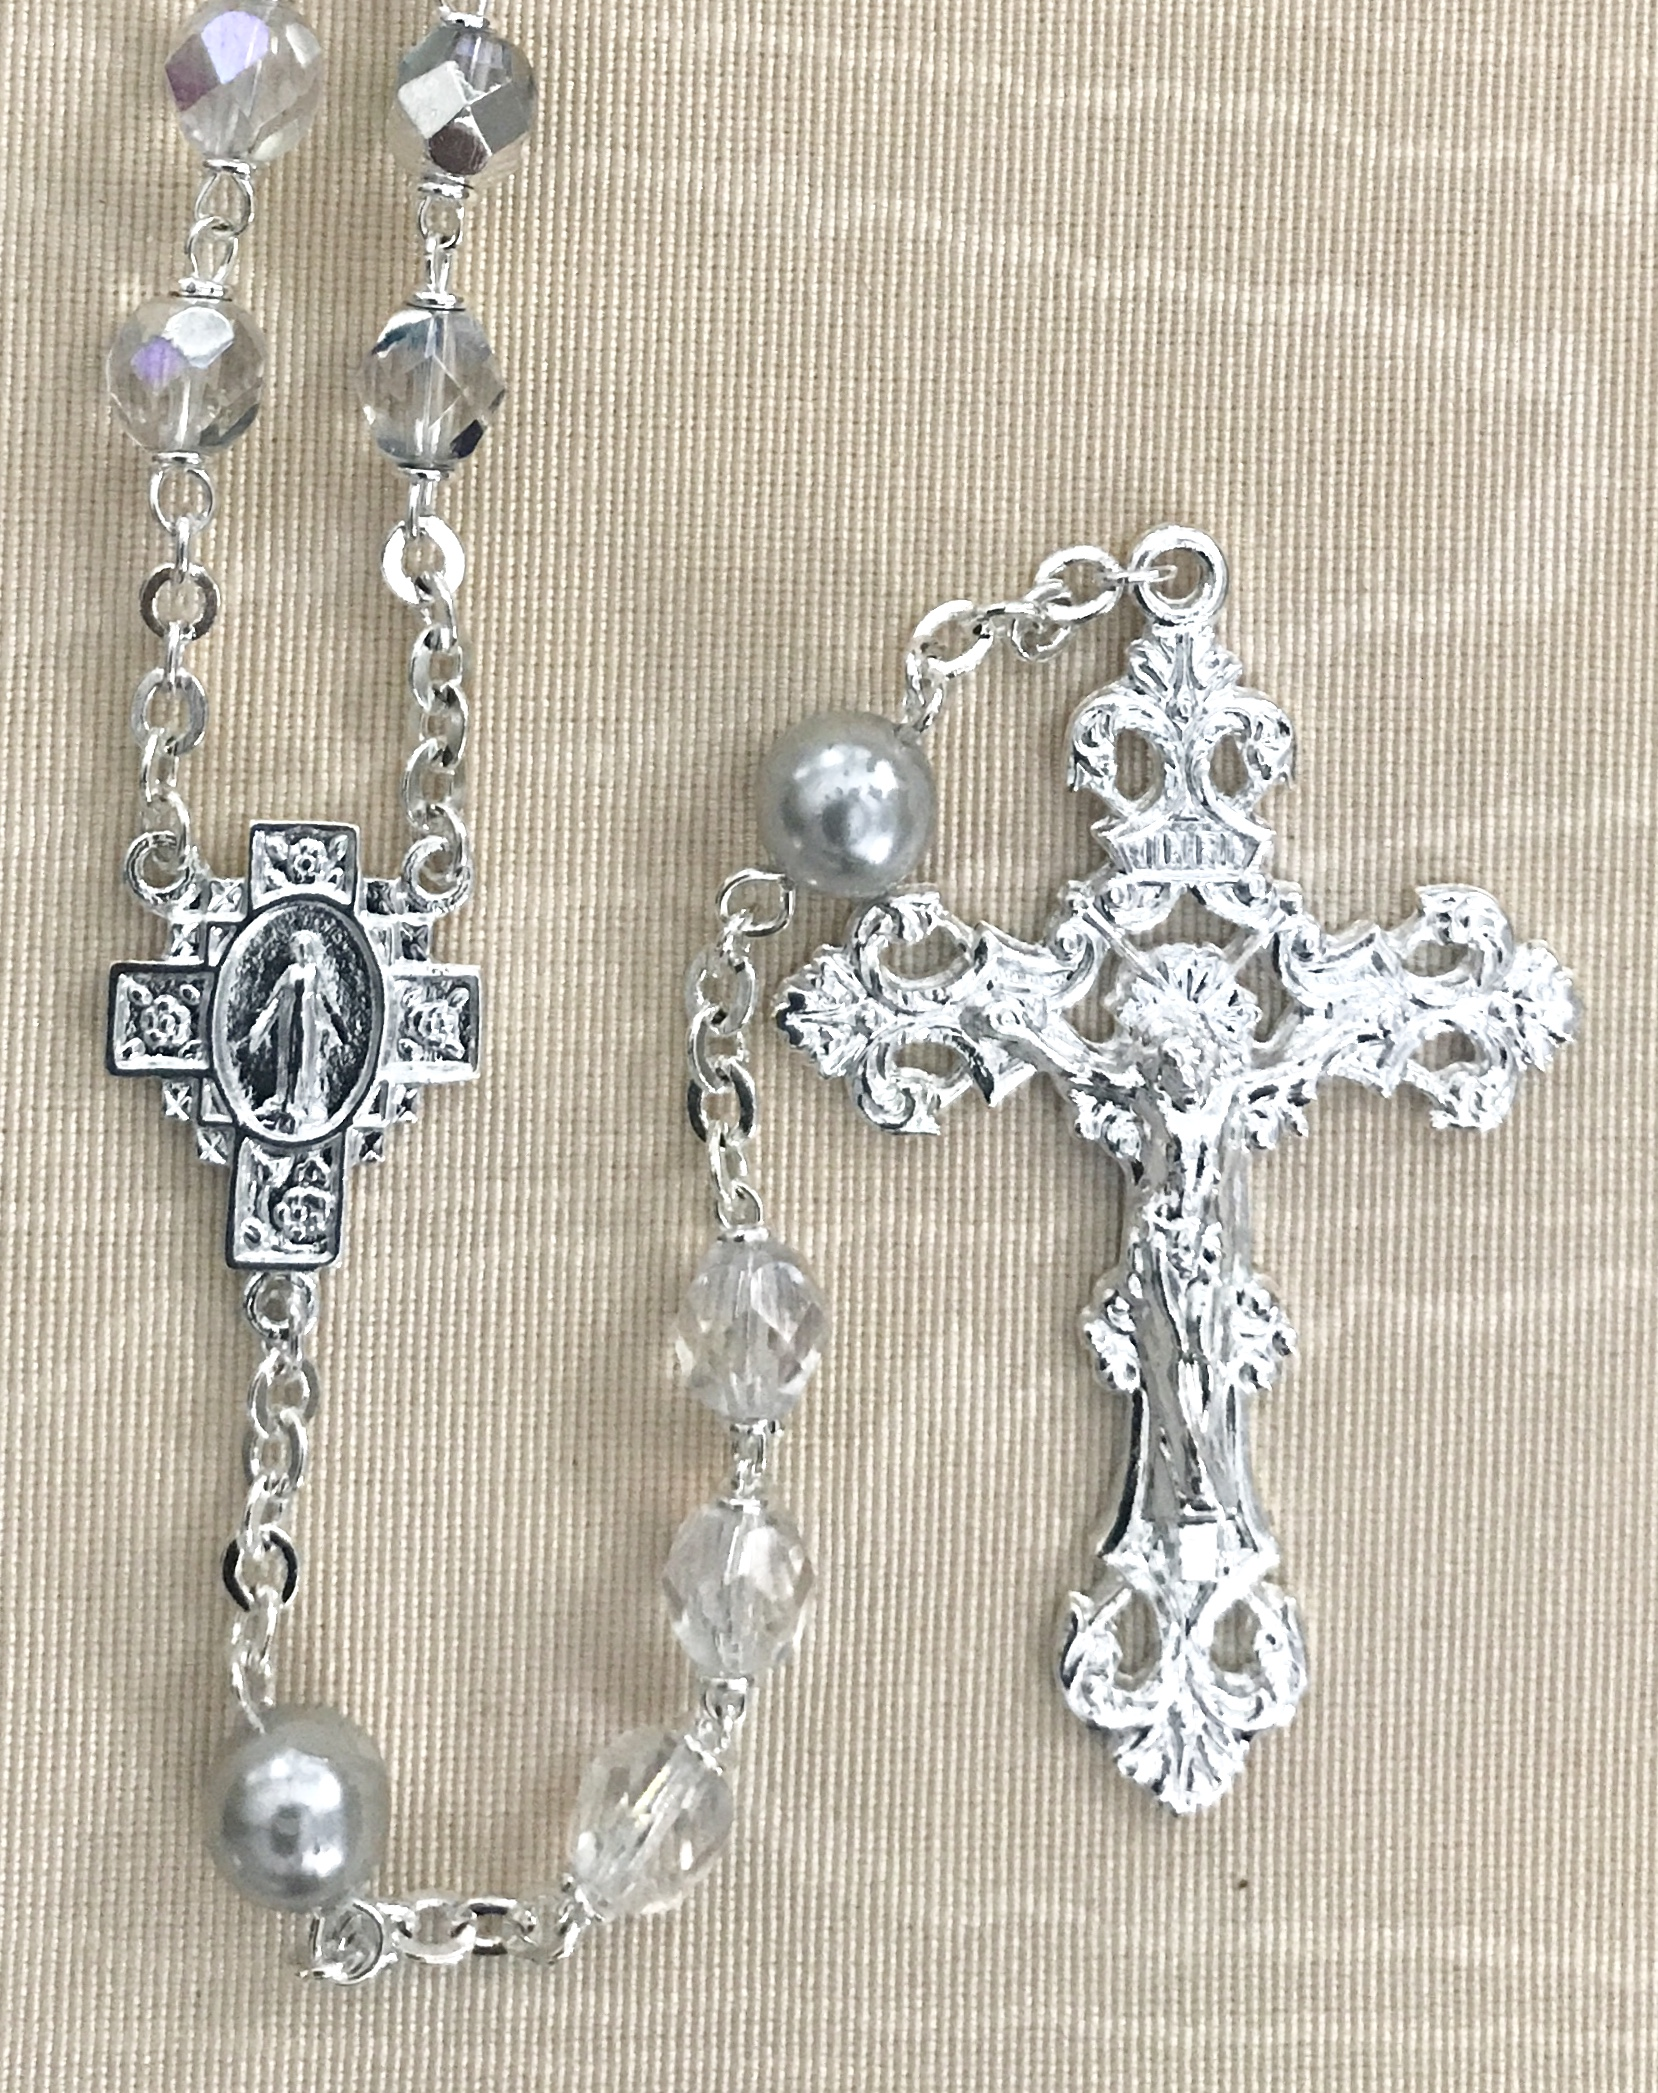 7mm CRYSTAL AB WITH LIGHT SAPPHIRE PEARL OUR FATHER BEADS STERLING SILVER PLATED ROSARY GIFT BOXED